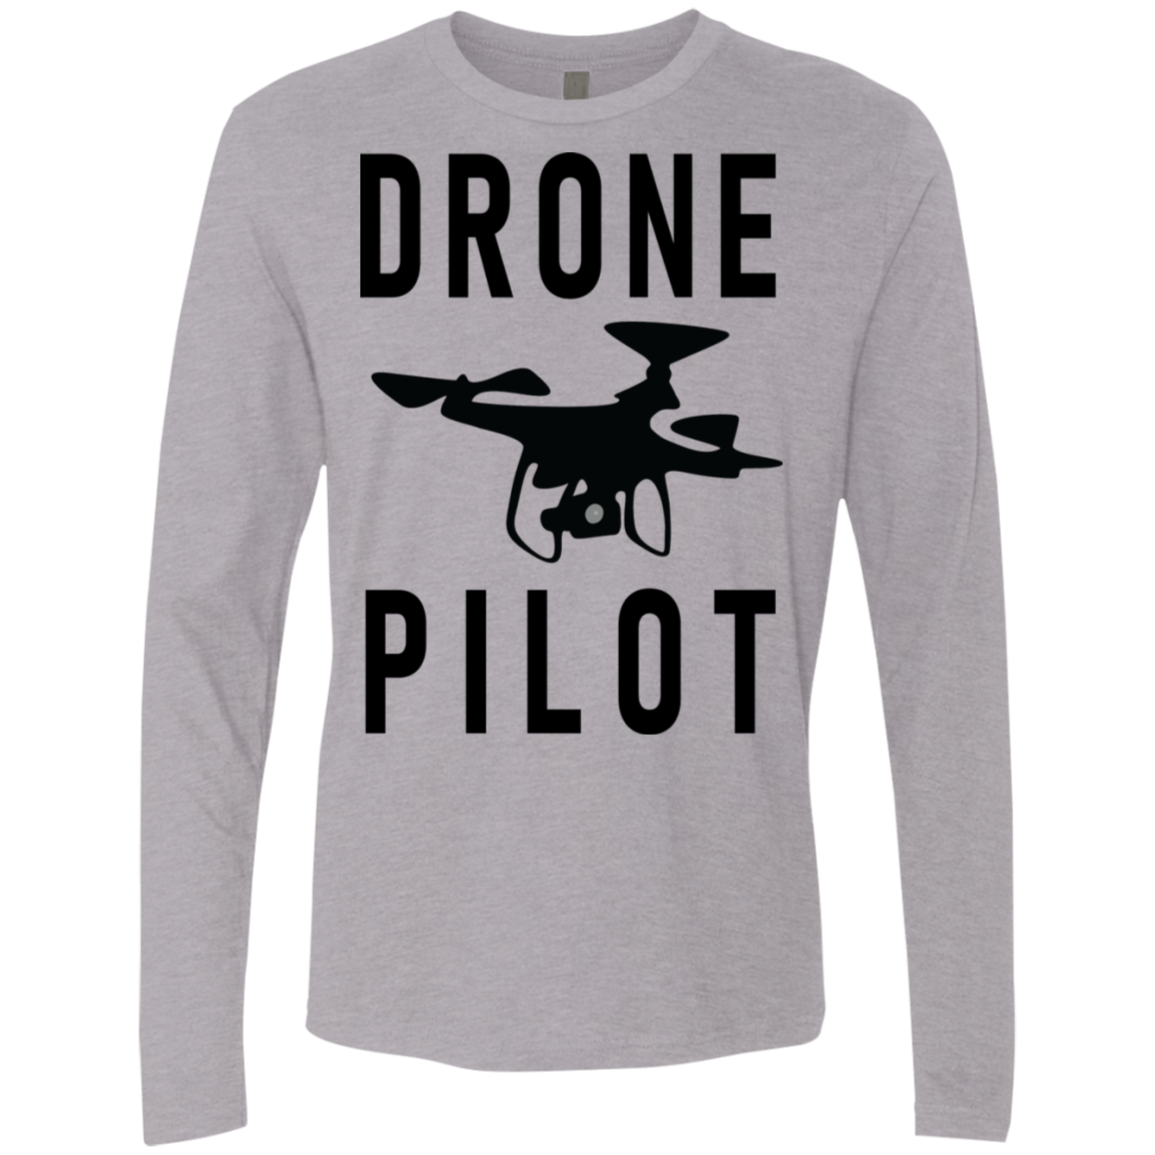 Drone Pilot Men's Long Sleeve Tee